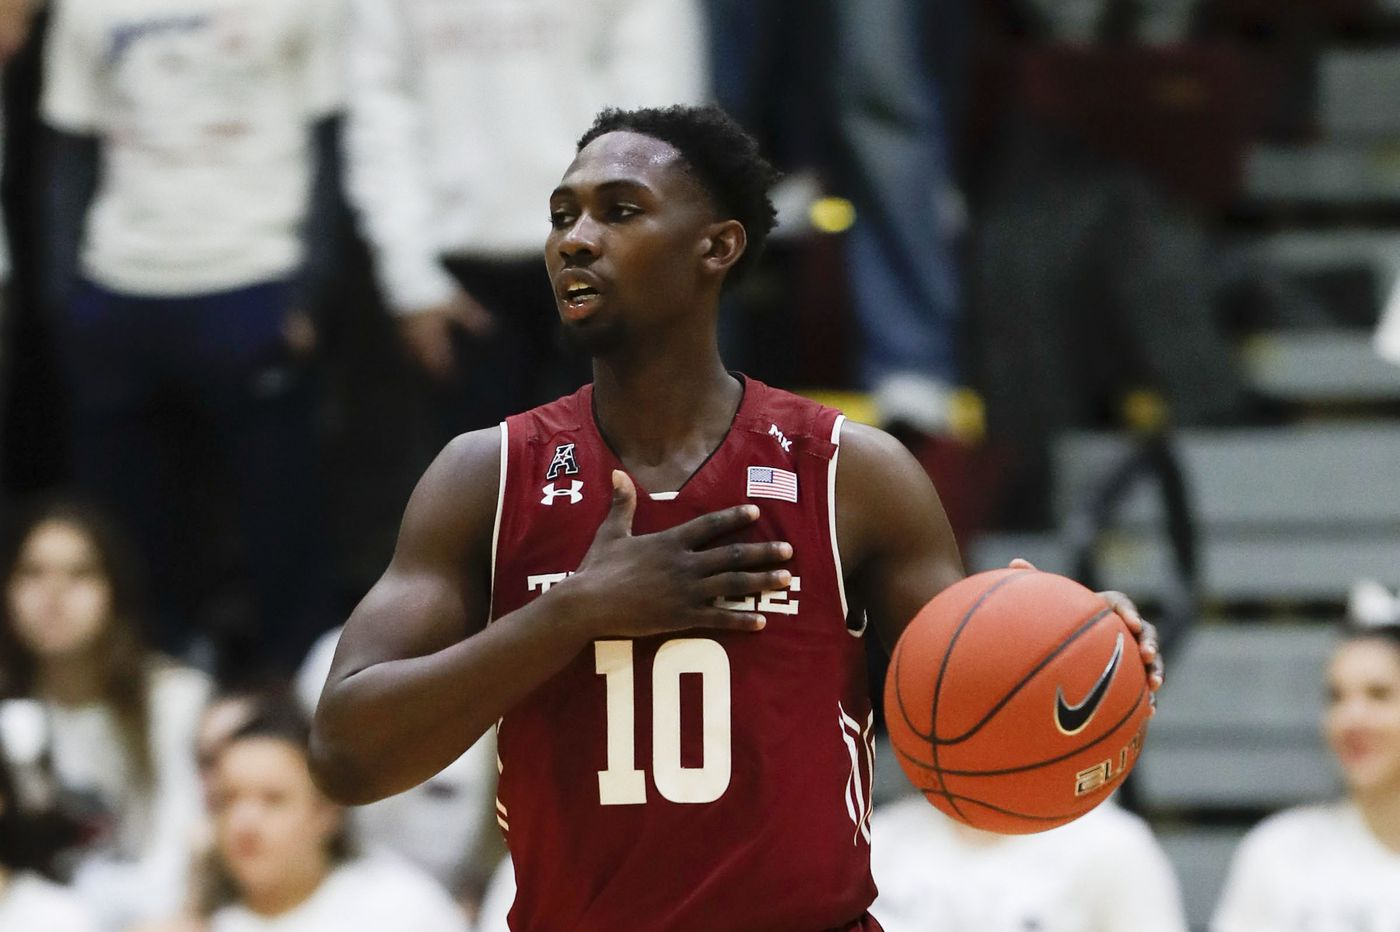 Temple looking to end Villanova's local dominance